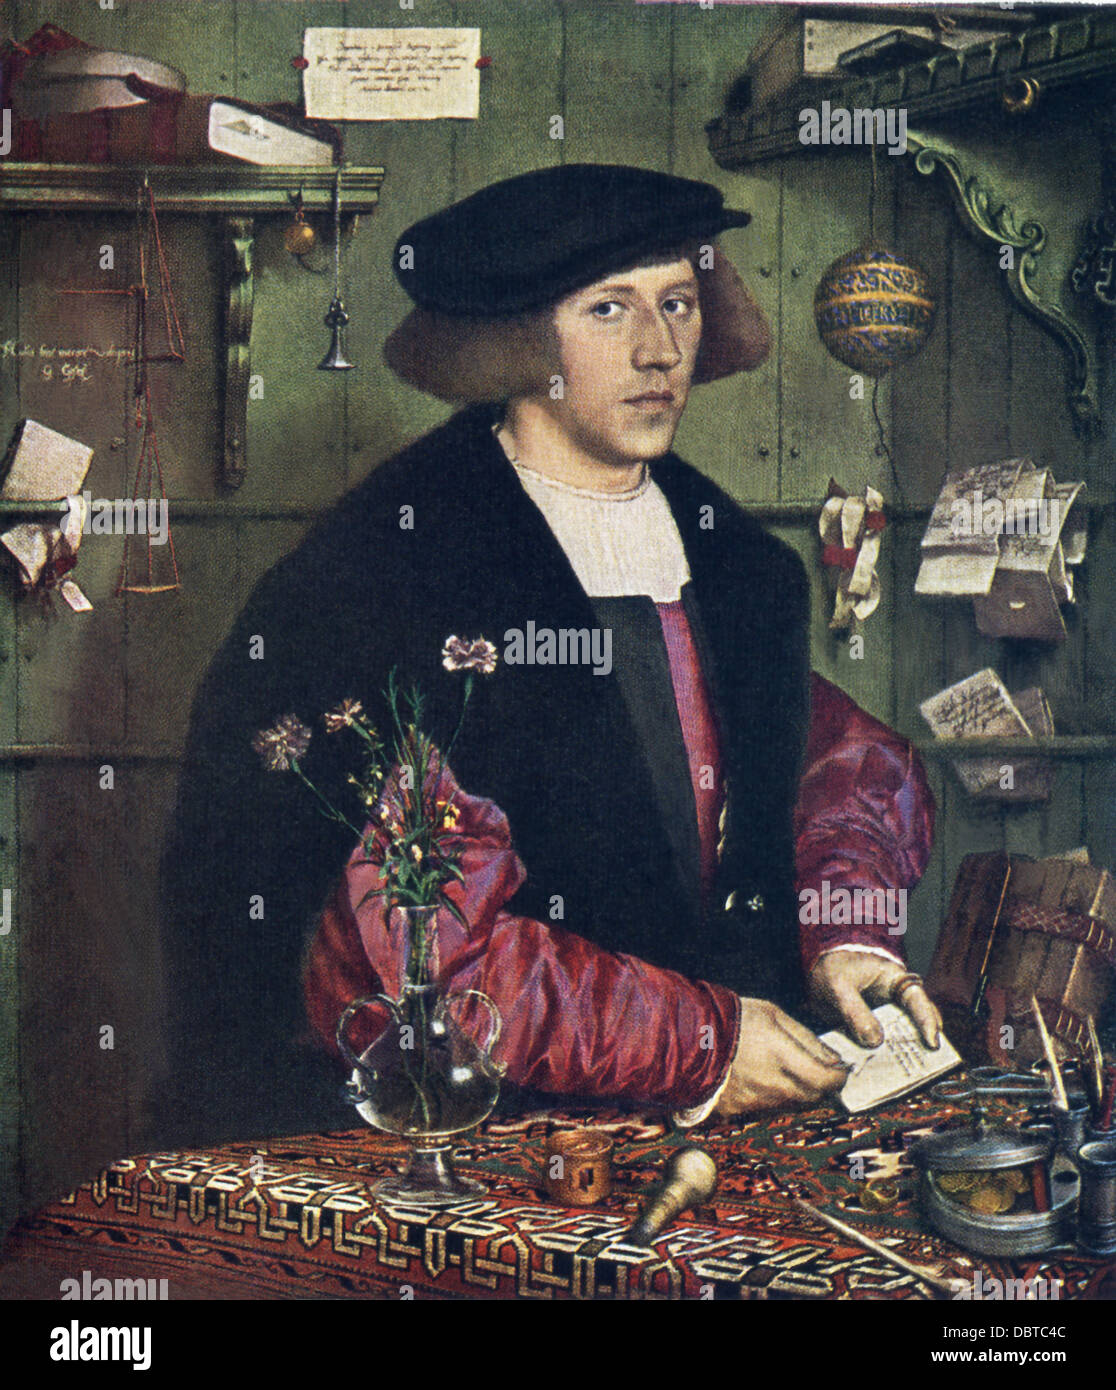 Hans Holbein the Younger (1497-1543), outstanding artist of German Renaissance, painted George Gisze. - Stock Image